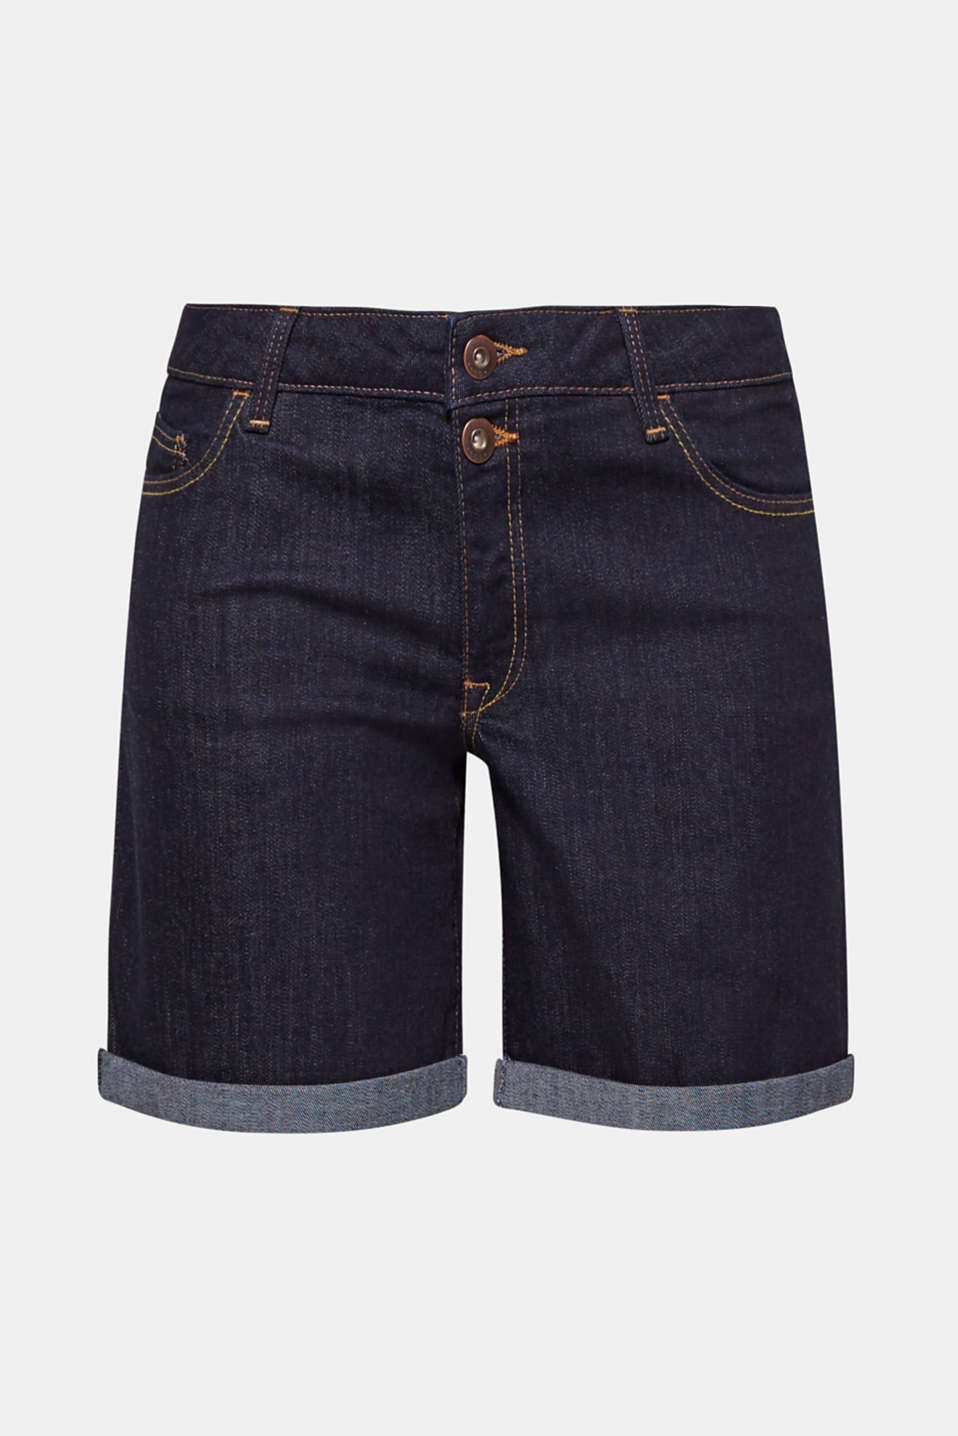 These casual shorts in stretch cotton denim are a must-have for summer.